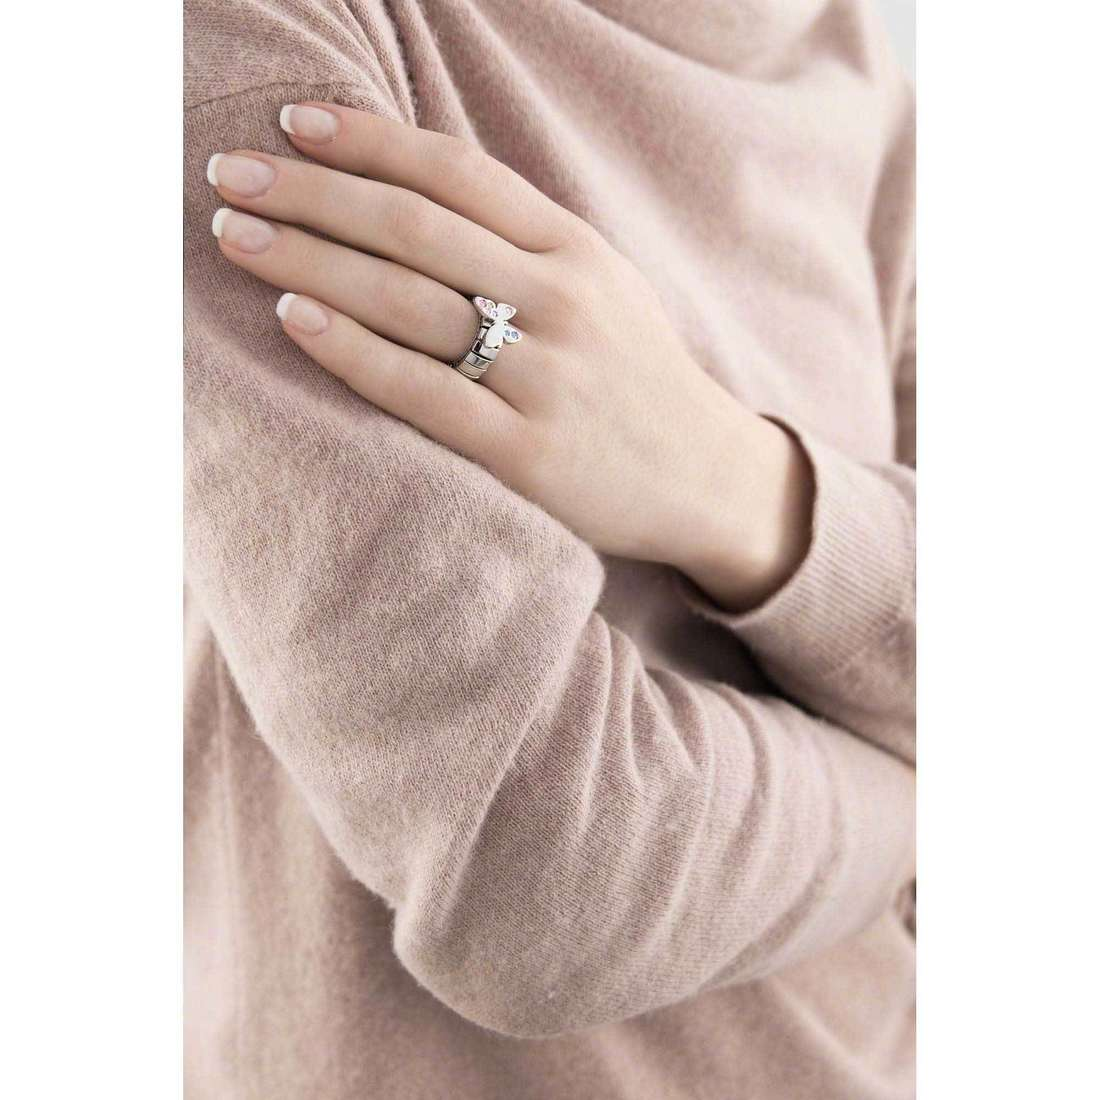 Nomination rings Butterfly woman 021303/001 photo wearing